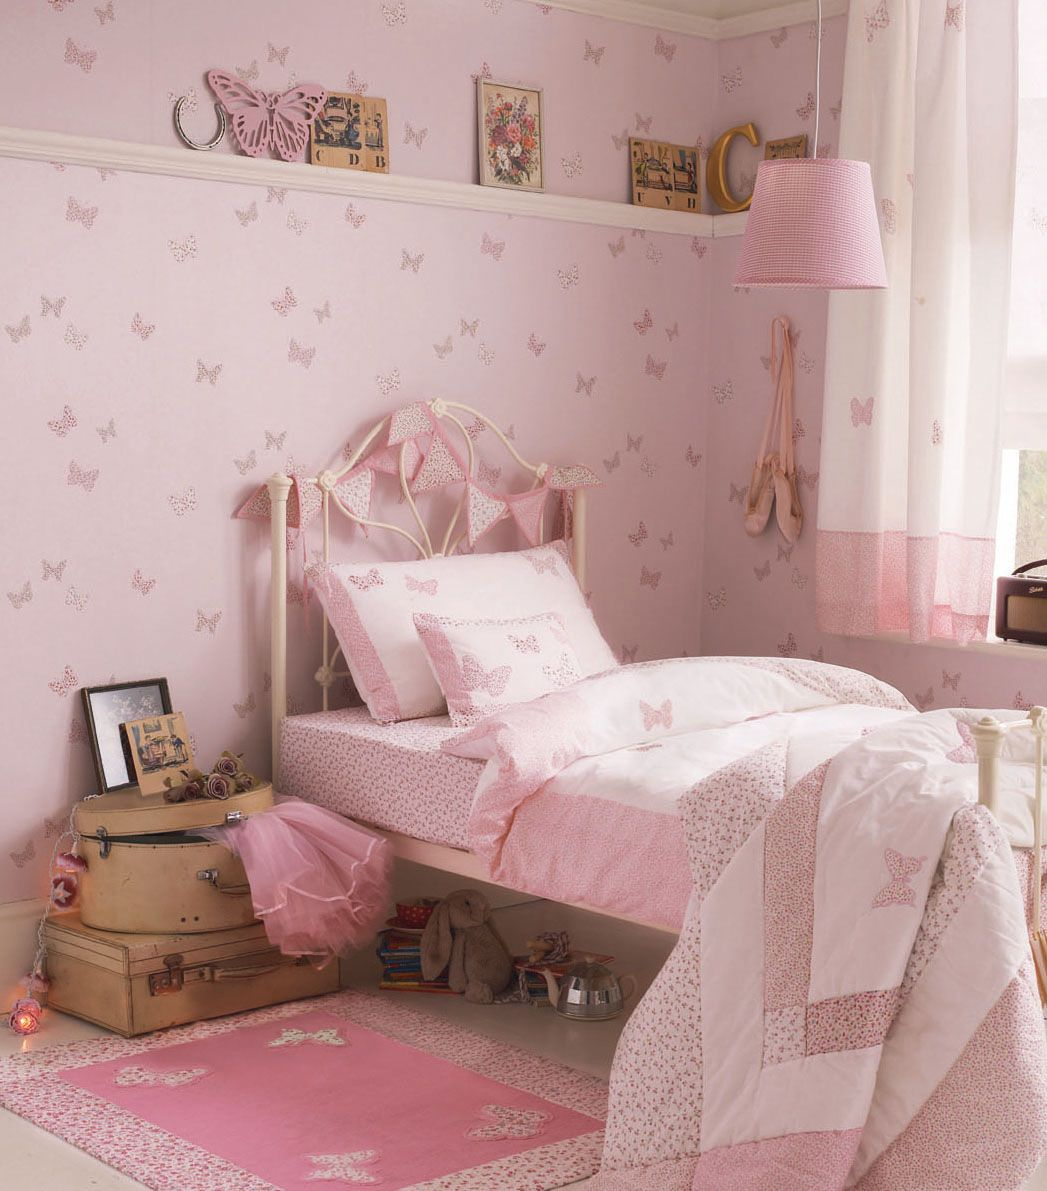 Pink dream room essay